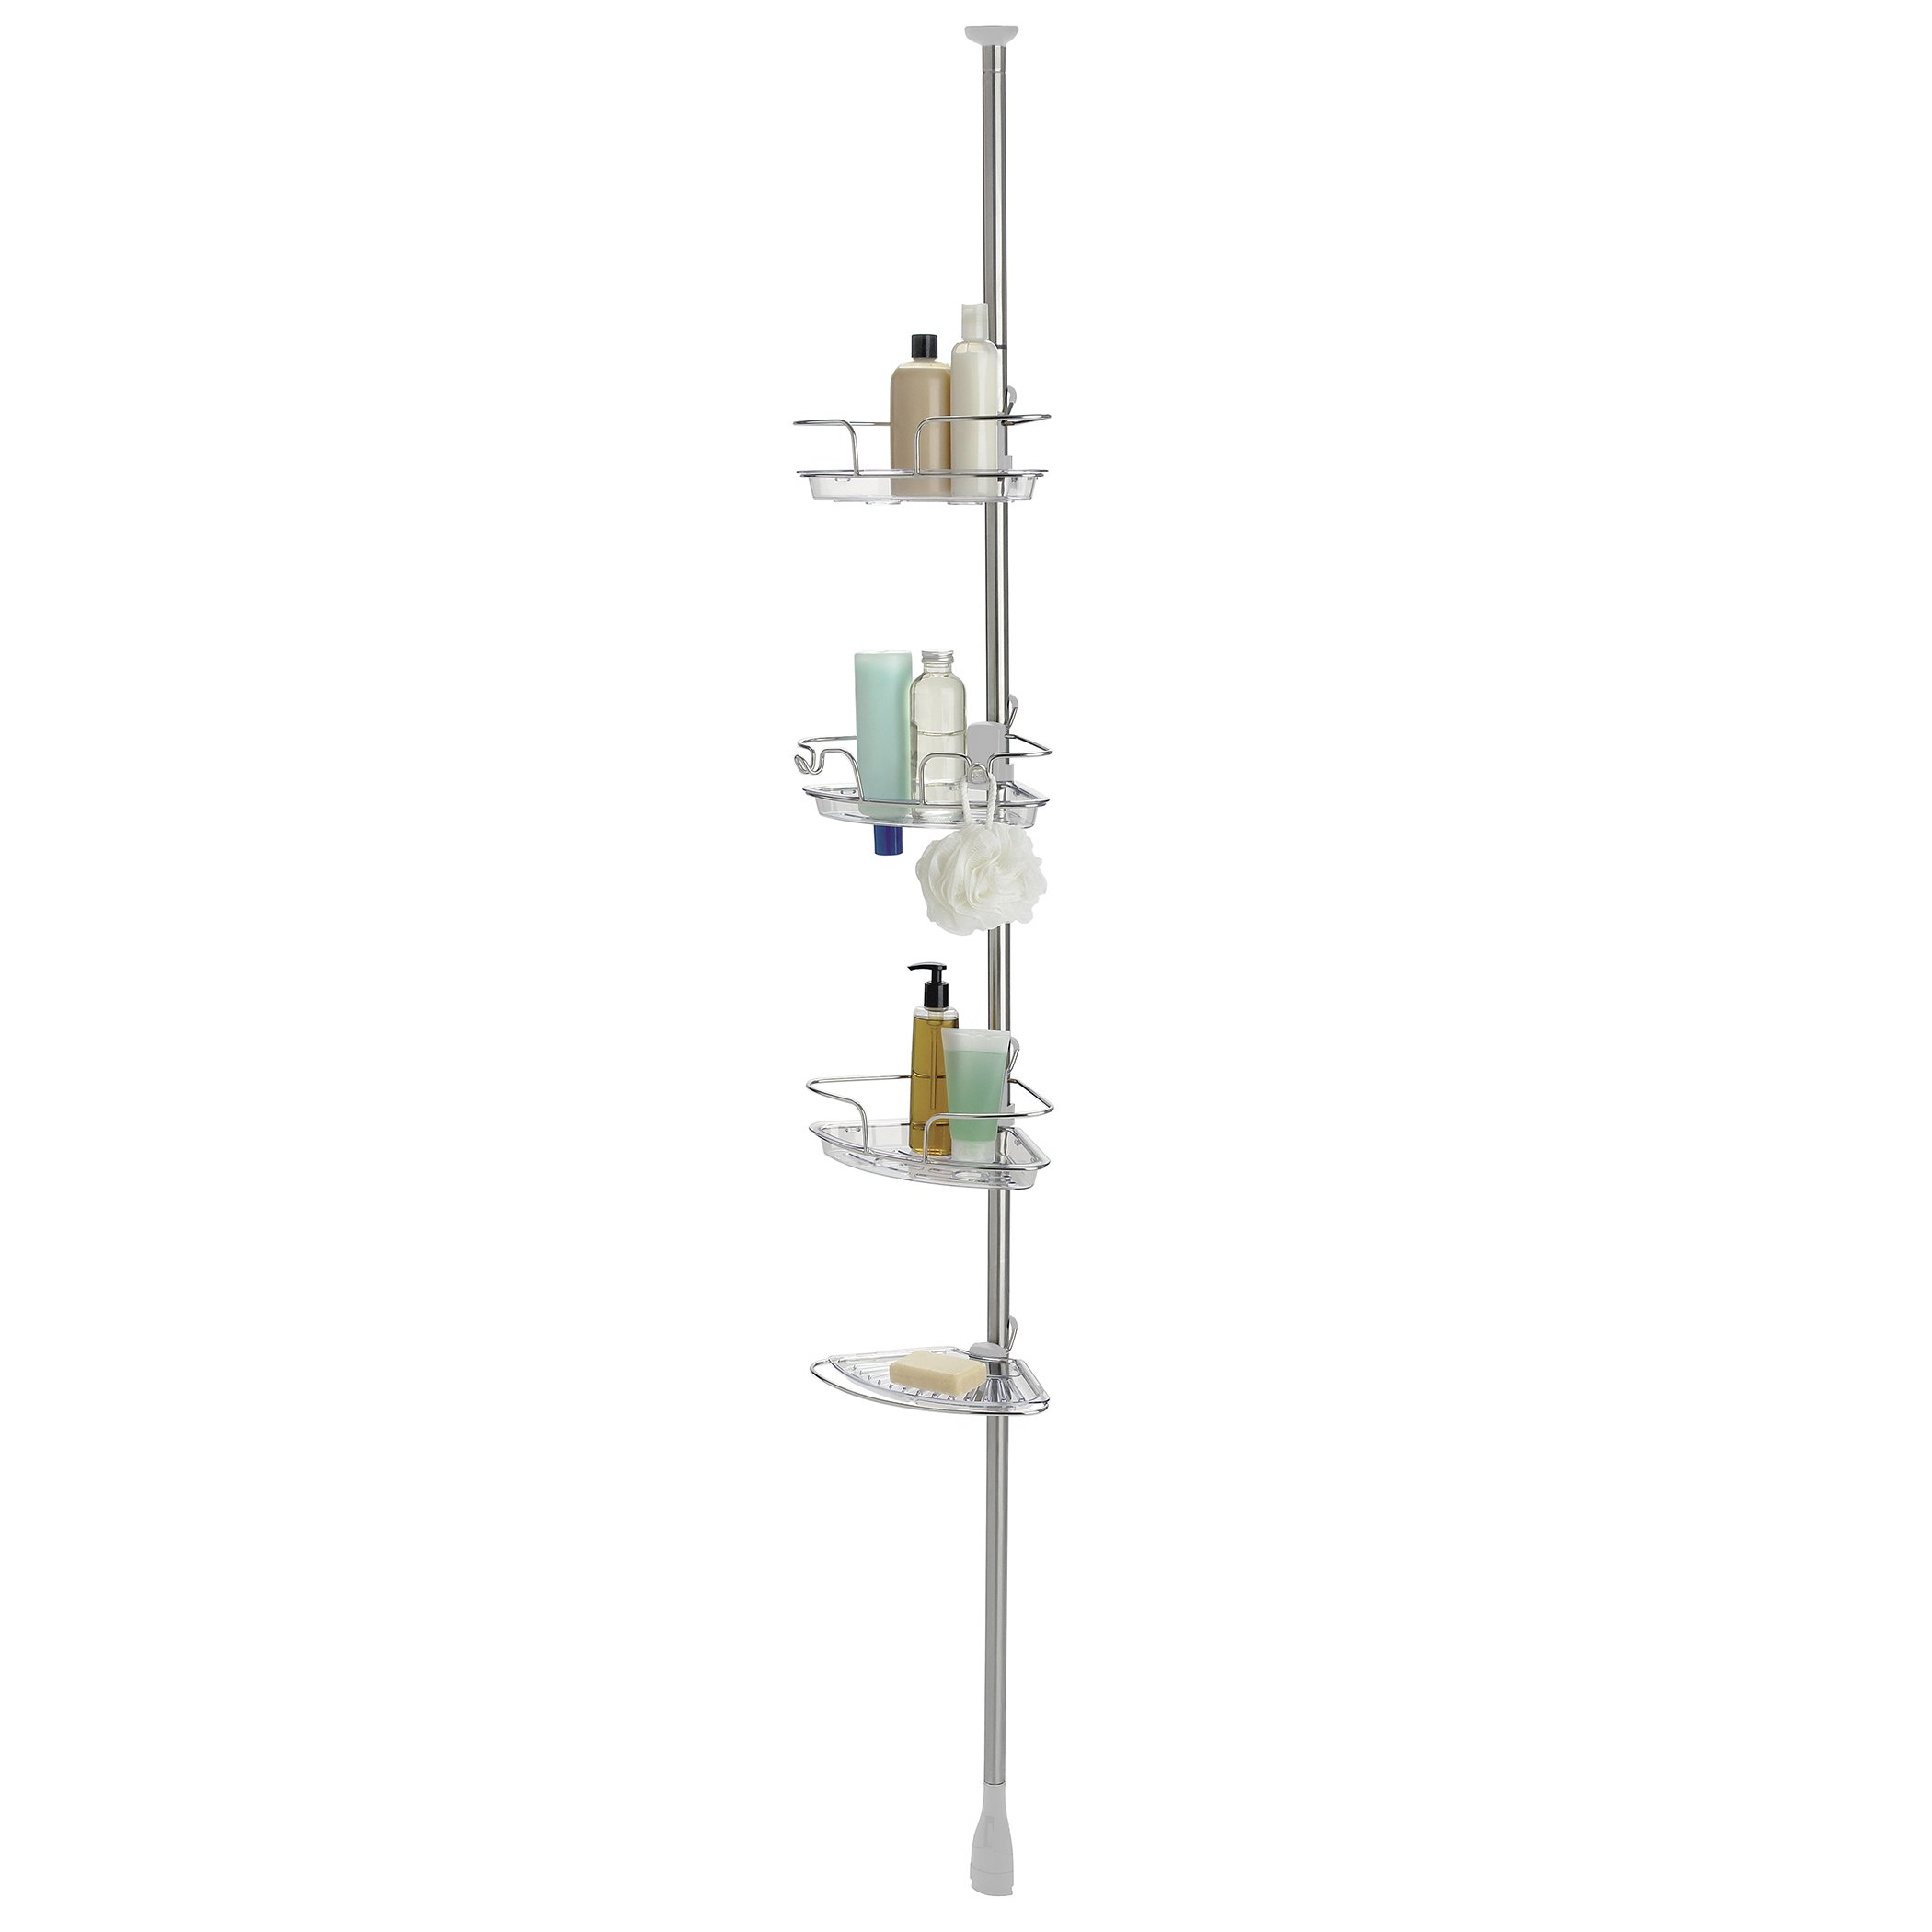 OXO Good Grips Lift and Lock Stainless Steel Tension Pole Shower Caddy